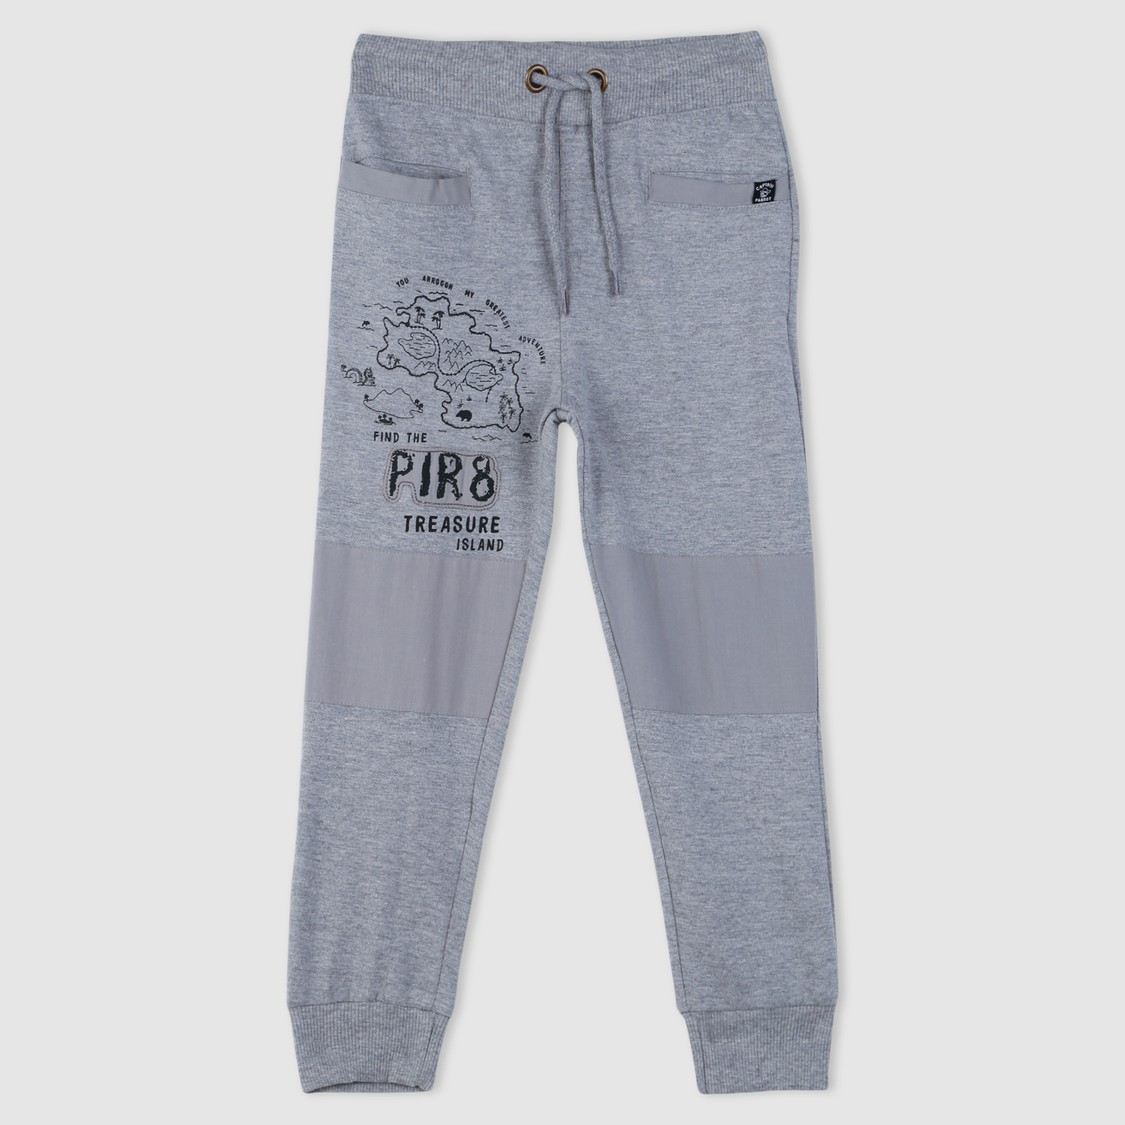 Printed Full Length Jog Pants with Elasticised Waistband